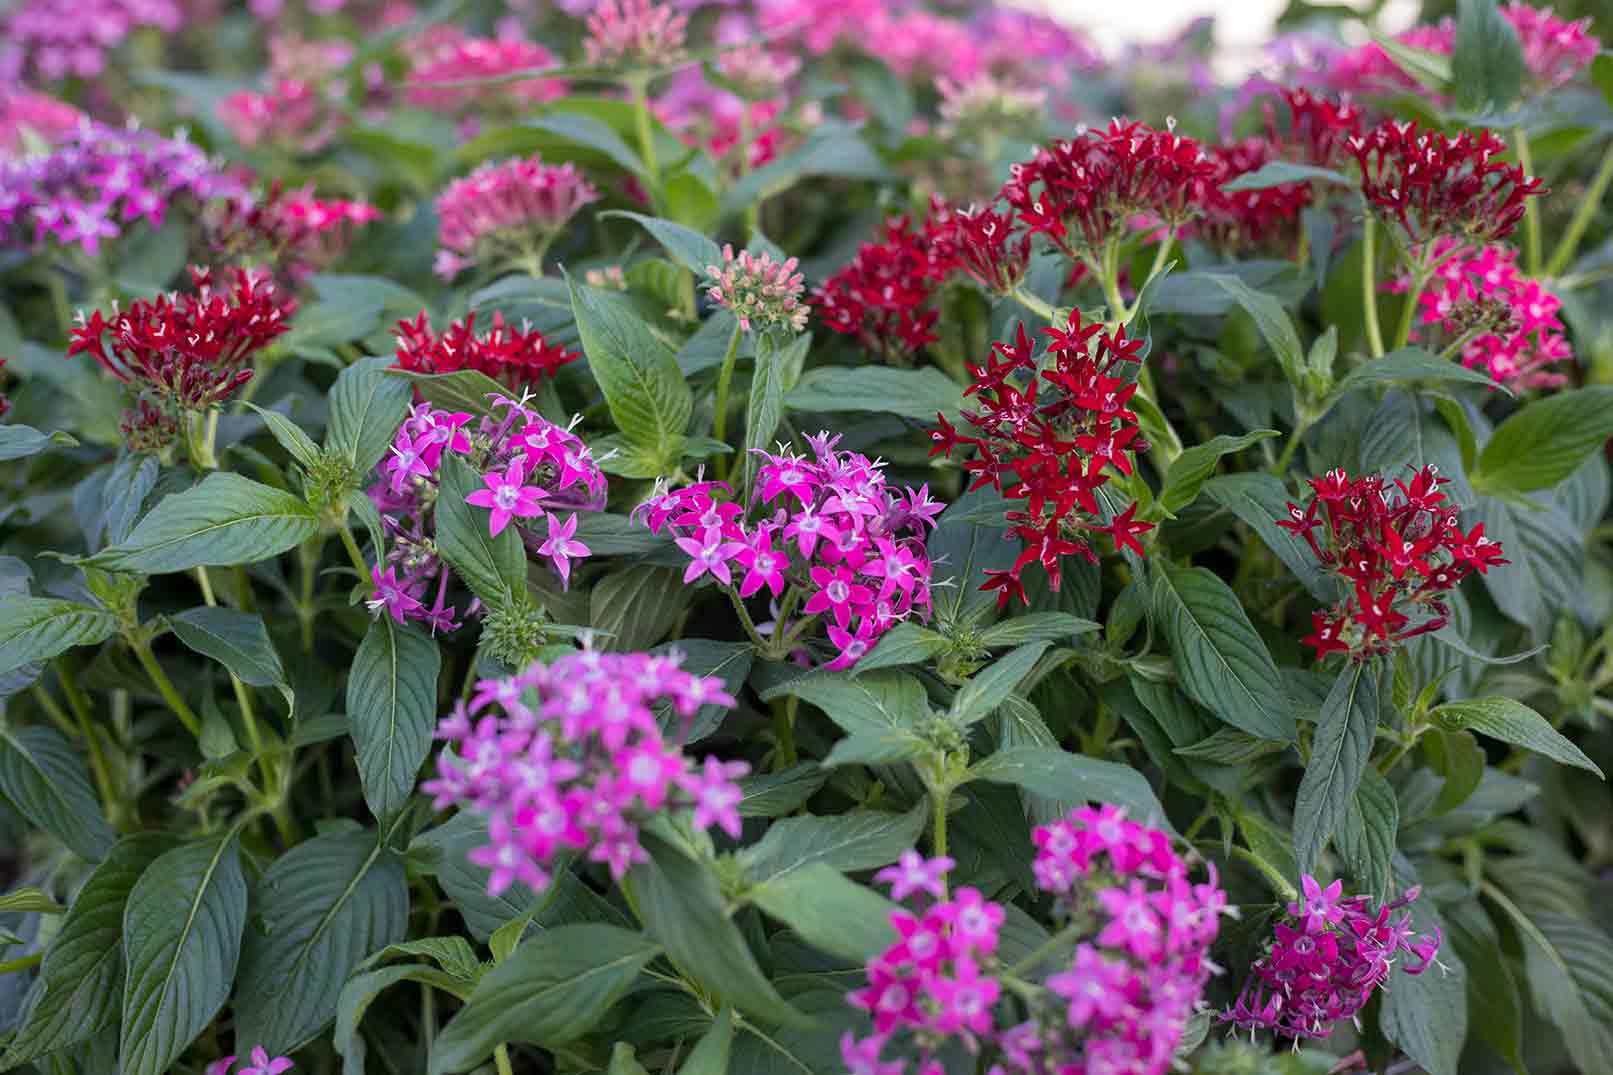 An image of flowering Pentas plant also known as a Star Flower in shades of pinks and reds